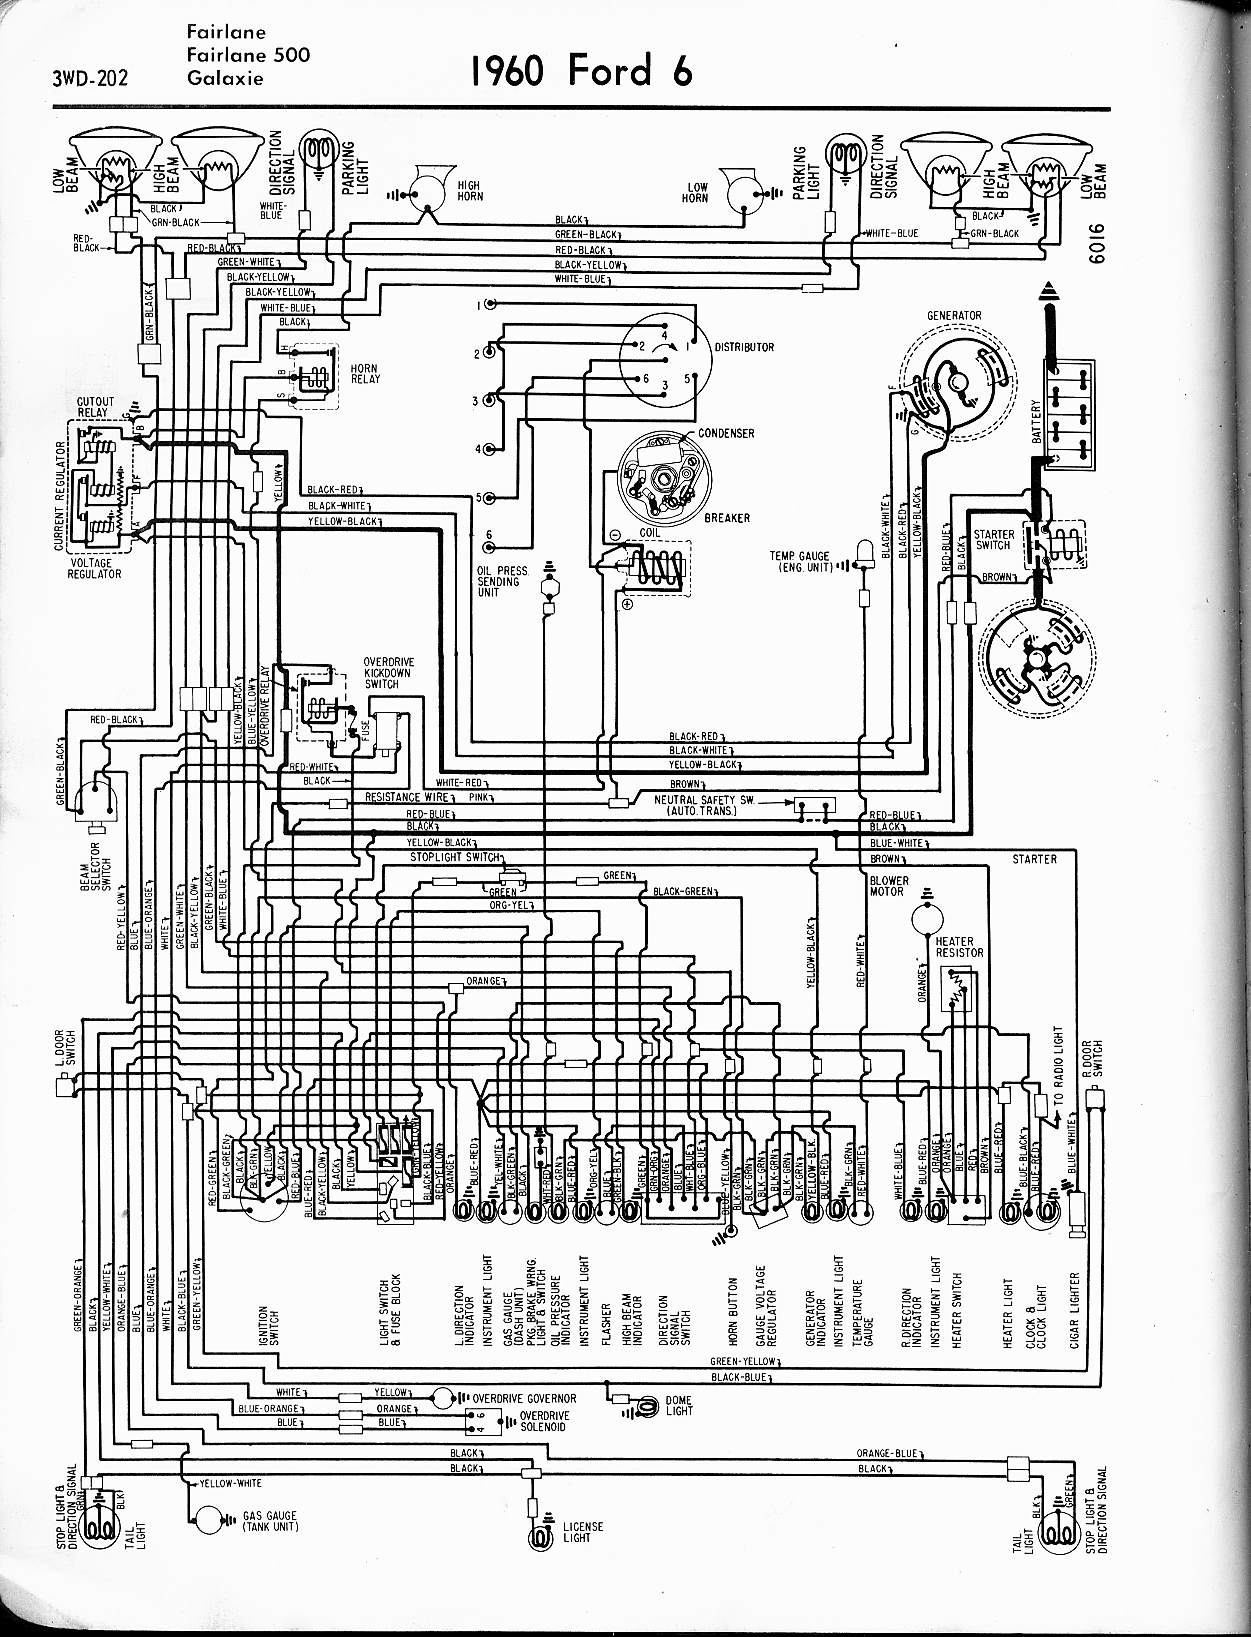 Audi 4000 Headlight Switch Wiring Diagram Free For Gm Diagrams Rh 2 19 53 Jennifer Retzke De Basic